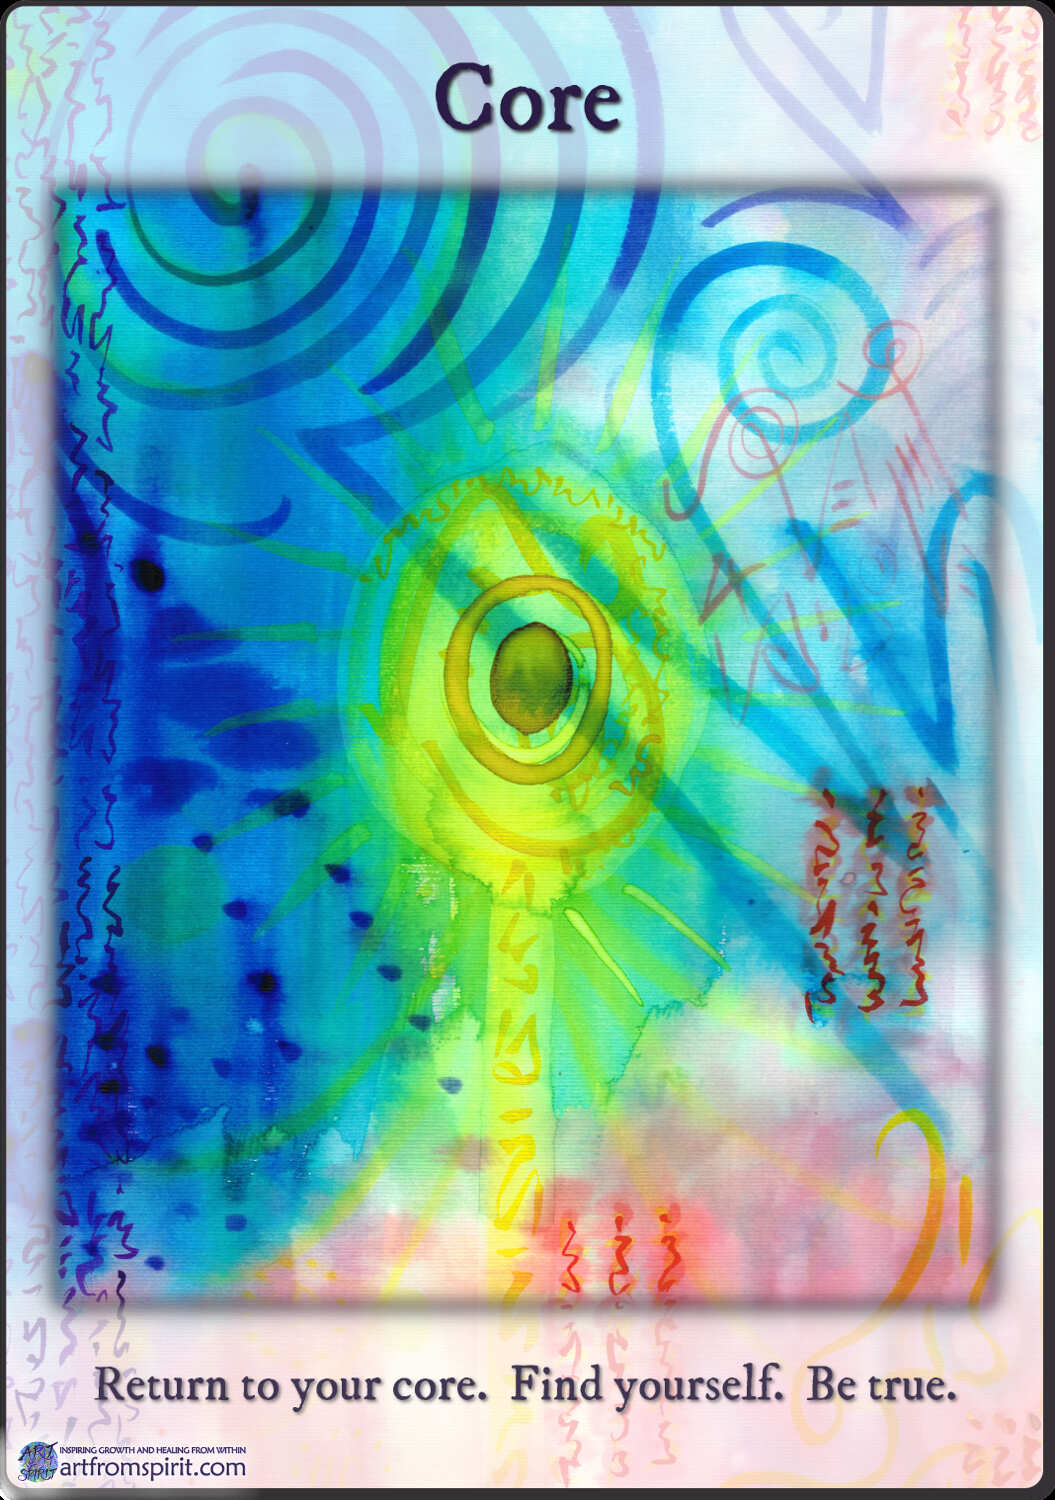 core-self-discovery-inspirational-cards-tegan-neville-art-from-spirit.jpg